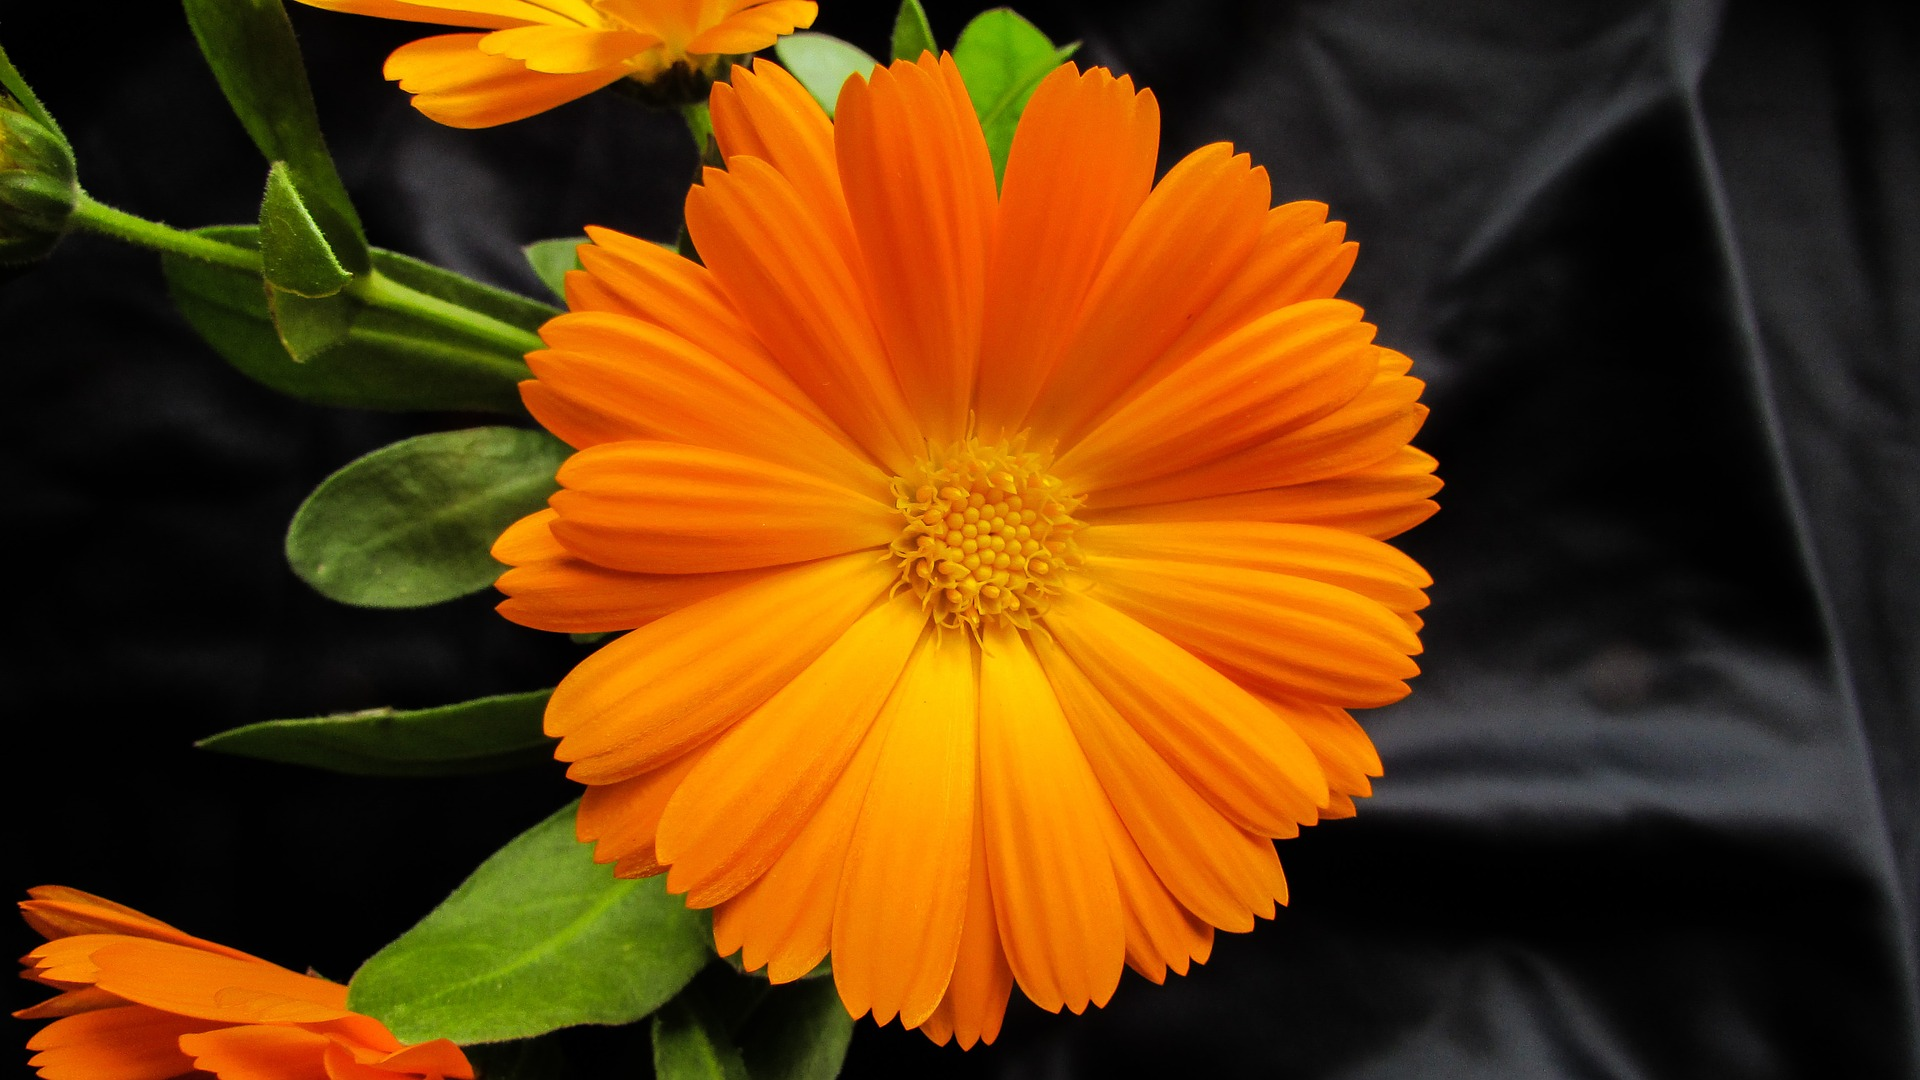 Calendula (calendula officinalis), also known as pot marigold, has been used by herbalists to heal wounds, cuts, burns and scrapes, etc in tincture, salve or cream form.